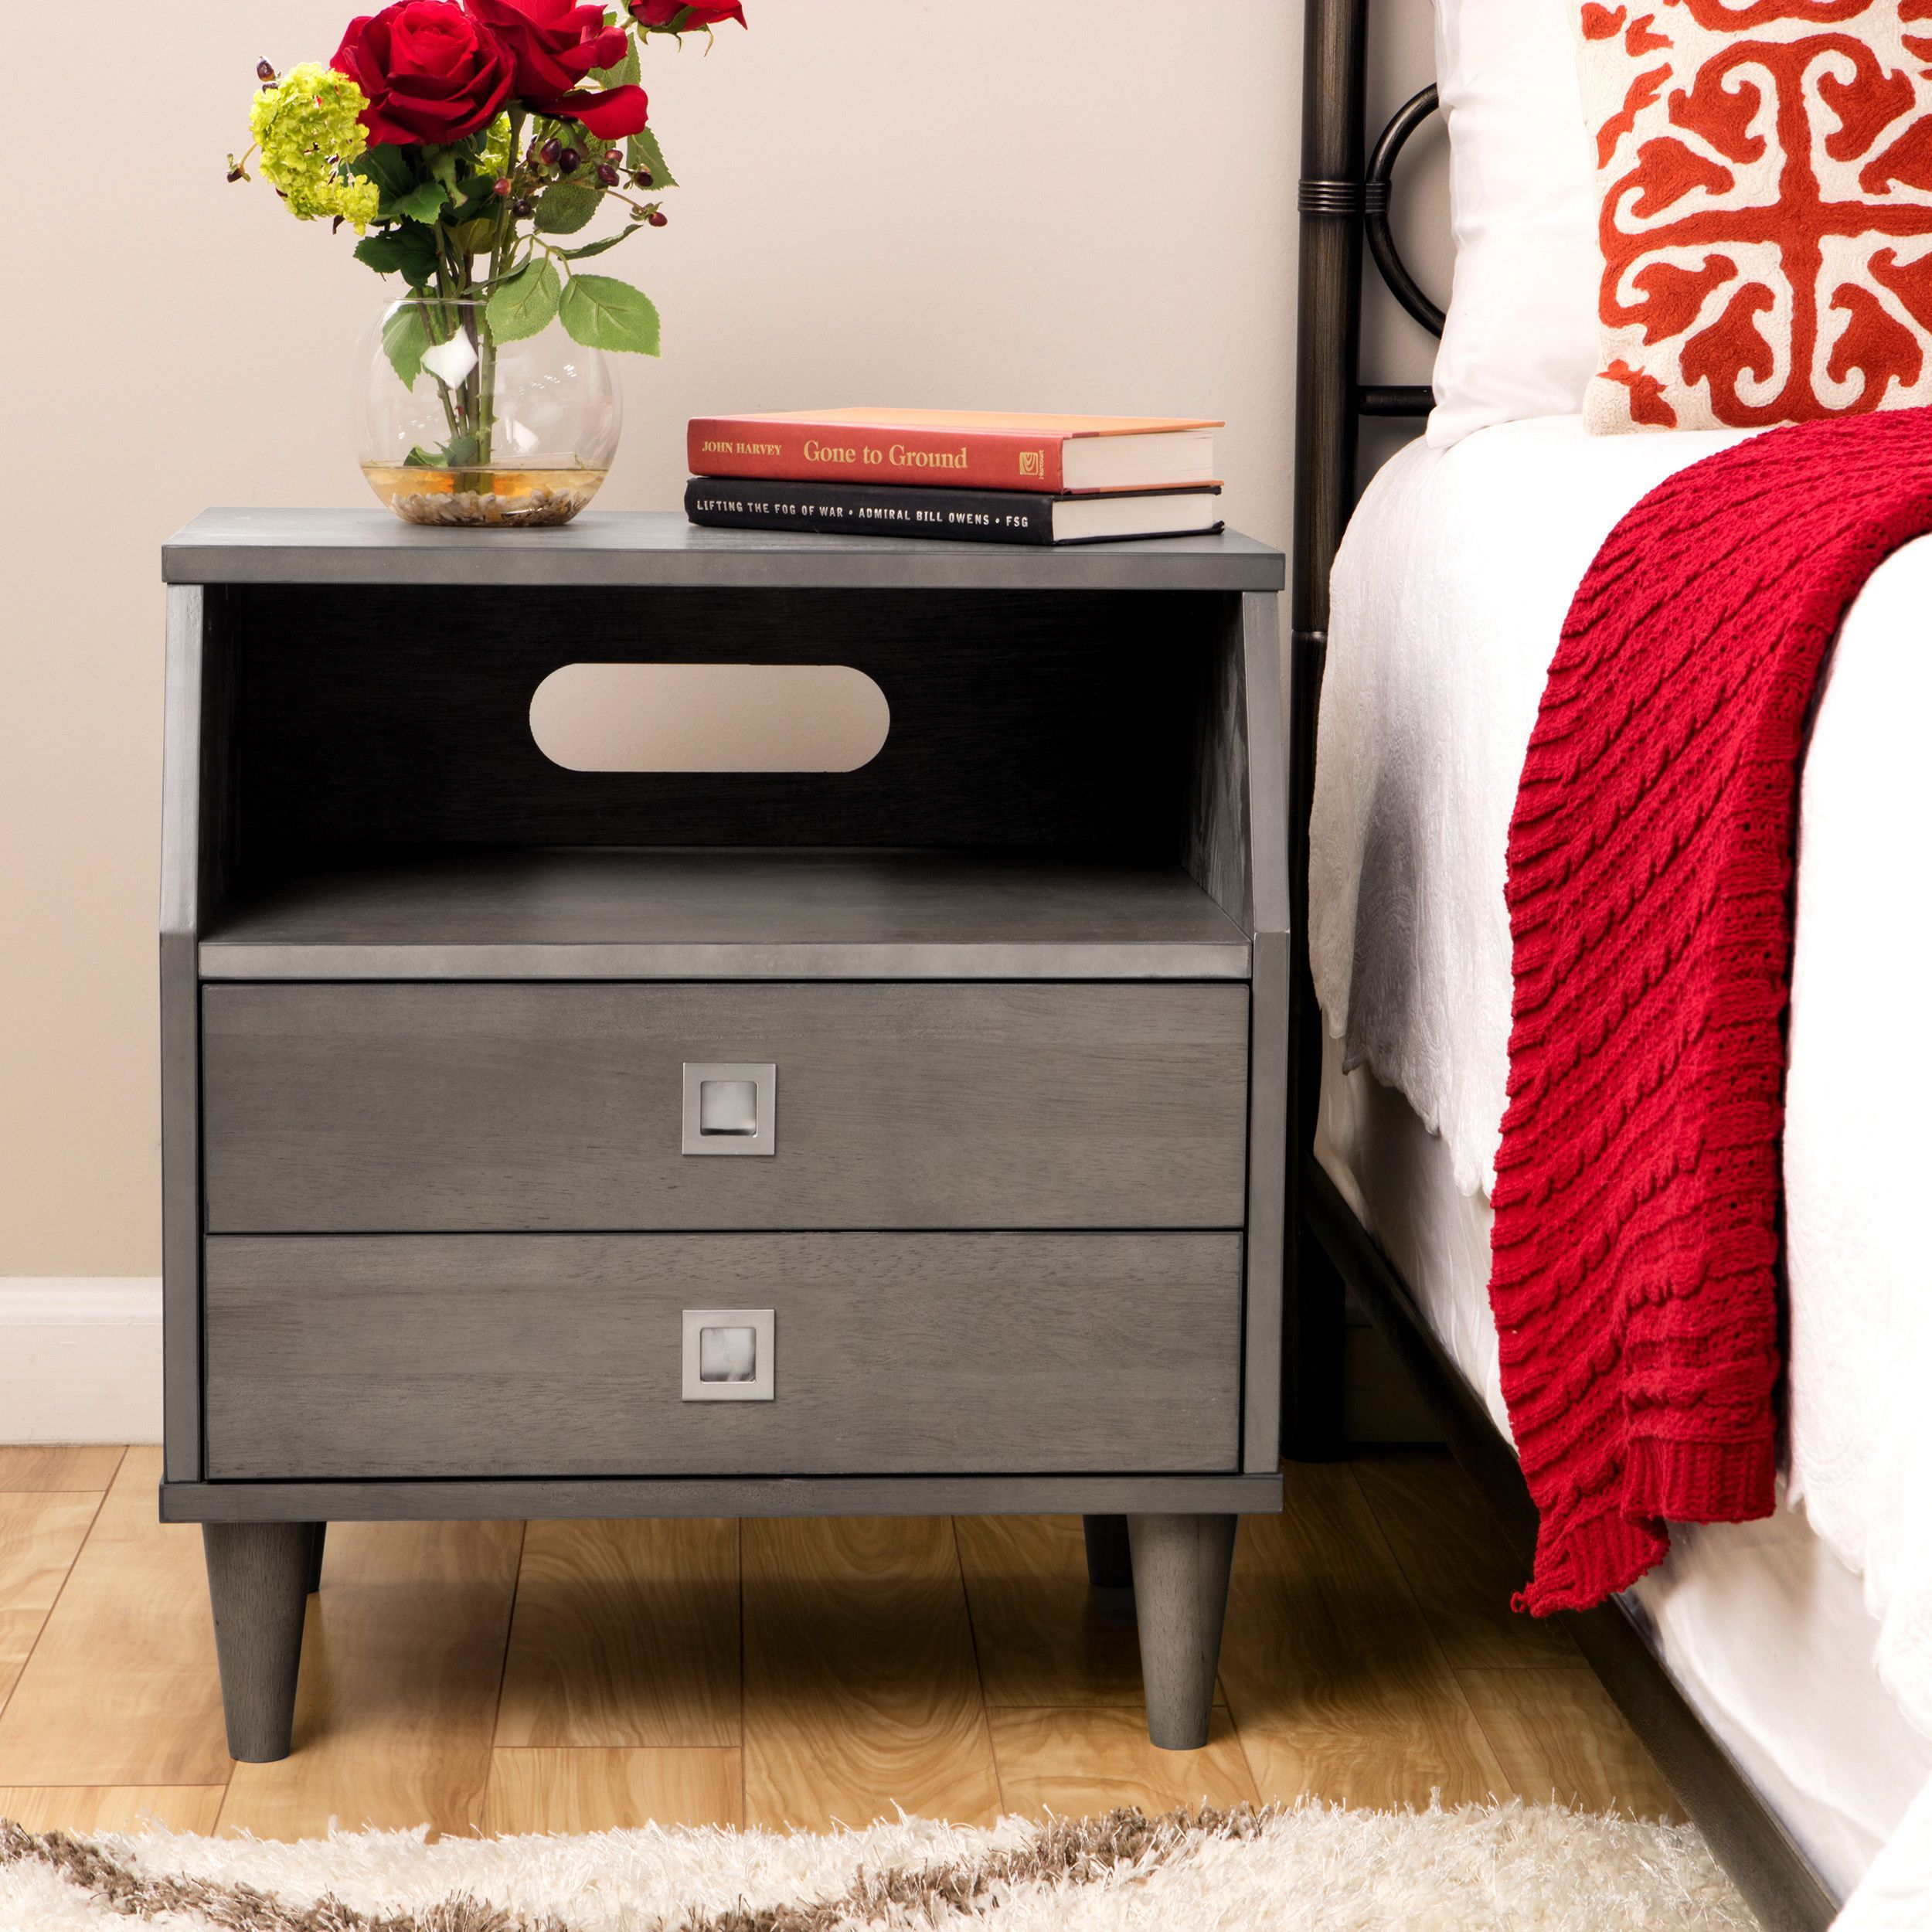 The Marley modular nightstand features a modern design with generous  storage to accommodate all your bedtime